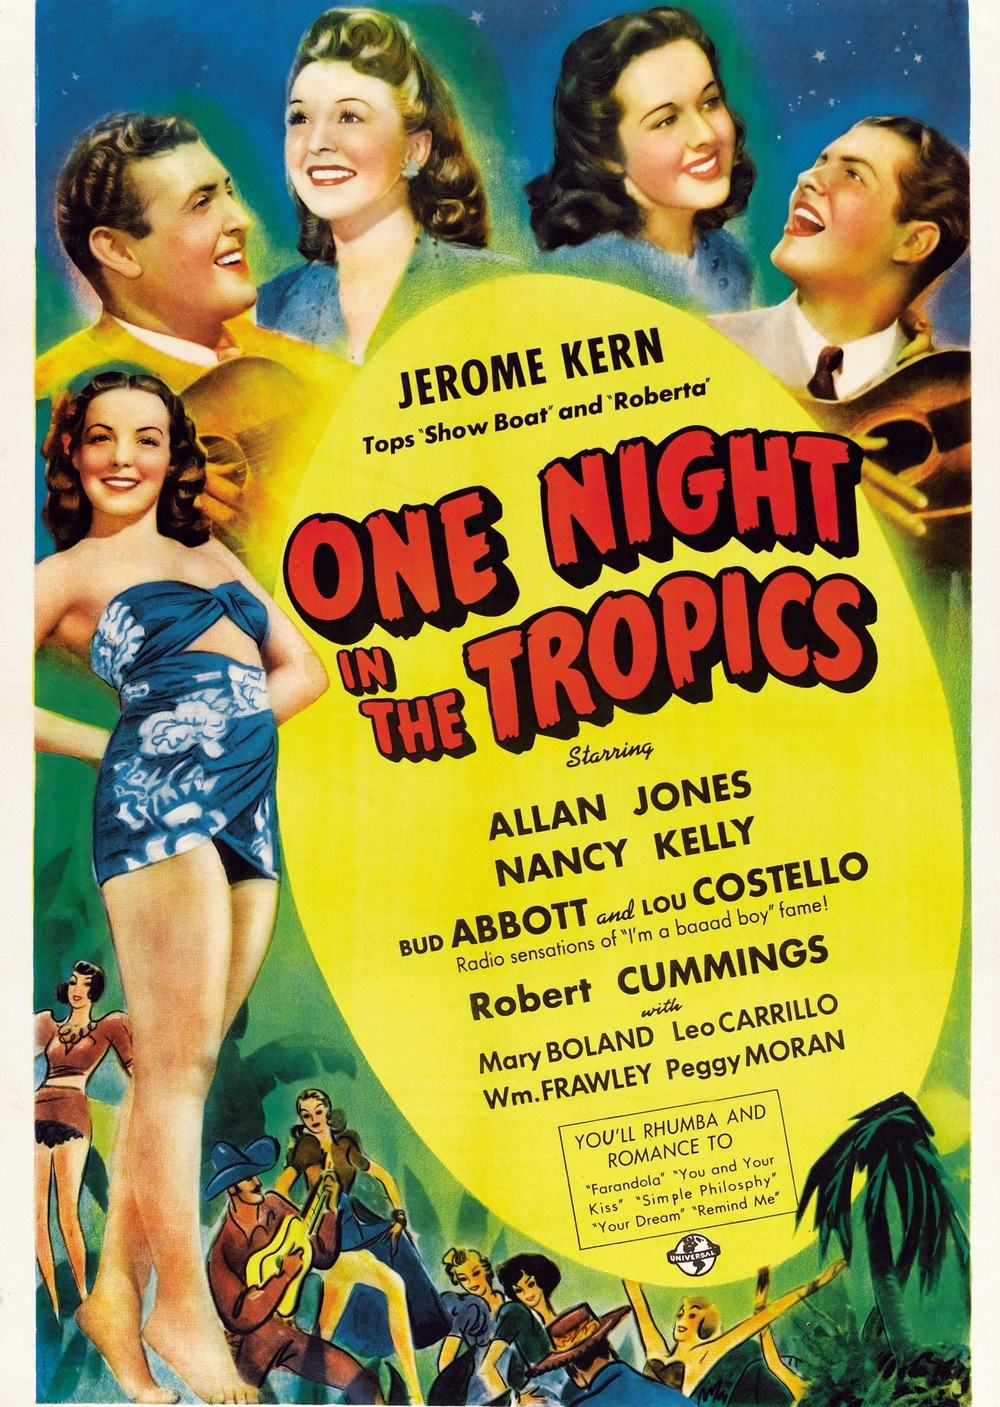 Abbott and Costello - One Night in the Tropics (1940)